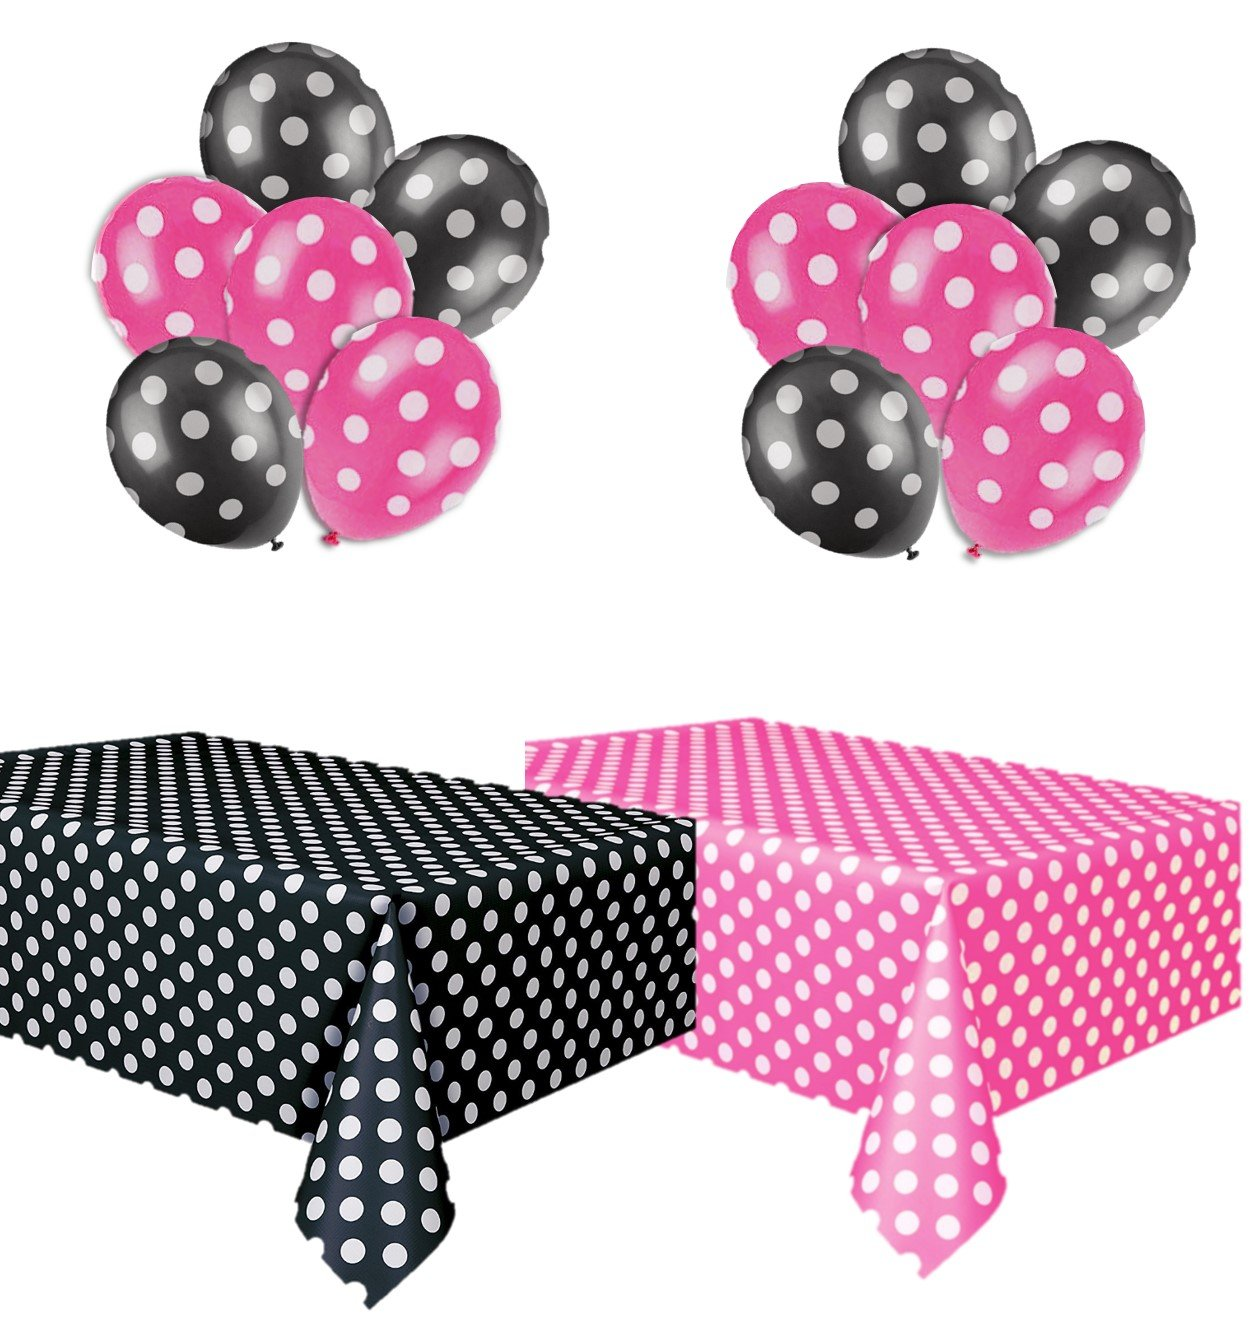 kedudes Polka Dot Plastic Tablecloth Hot Pink & White and Black & White, and Two Packages of Polkadot Balloons